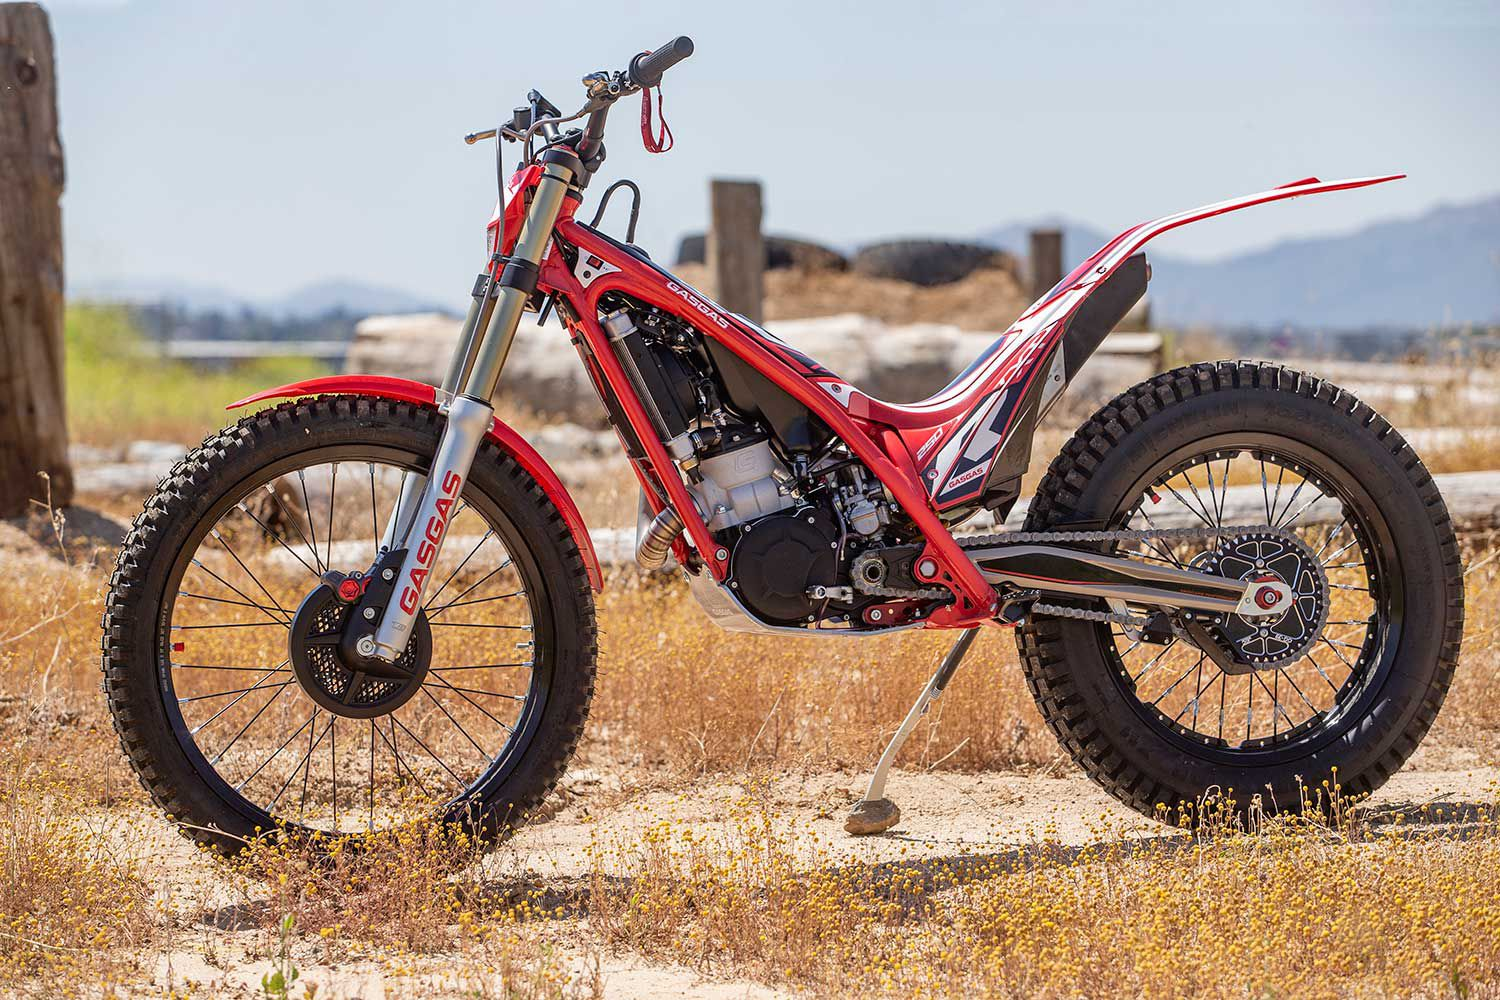 Made in Spain and distributed by KTM, the 2020 GasGas TXT Racing 250 retails at $7,599. It's designed for trials competition and play riding, in lieu of a traditional enduro bike.